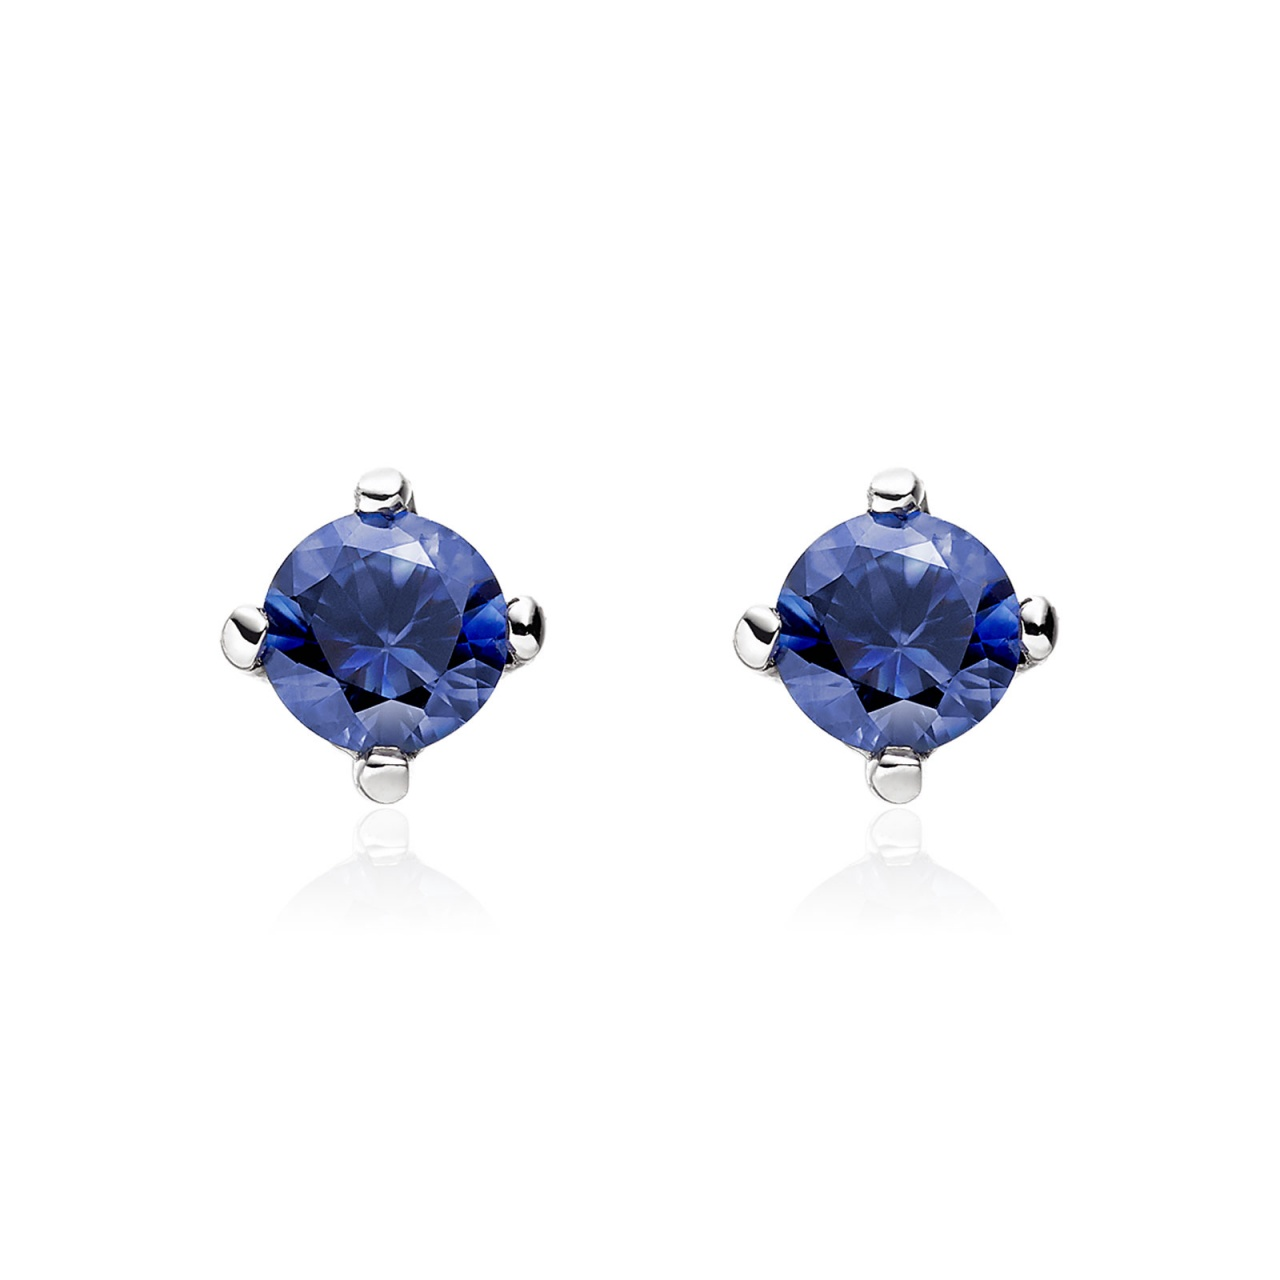 Blue Sapphire Stud Earrings in White Gold with Akoya Pearls-1